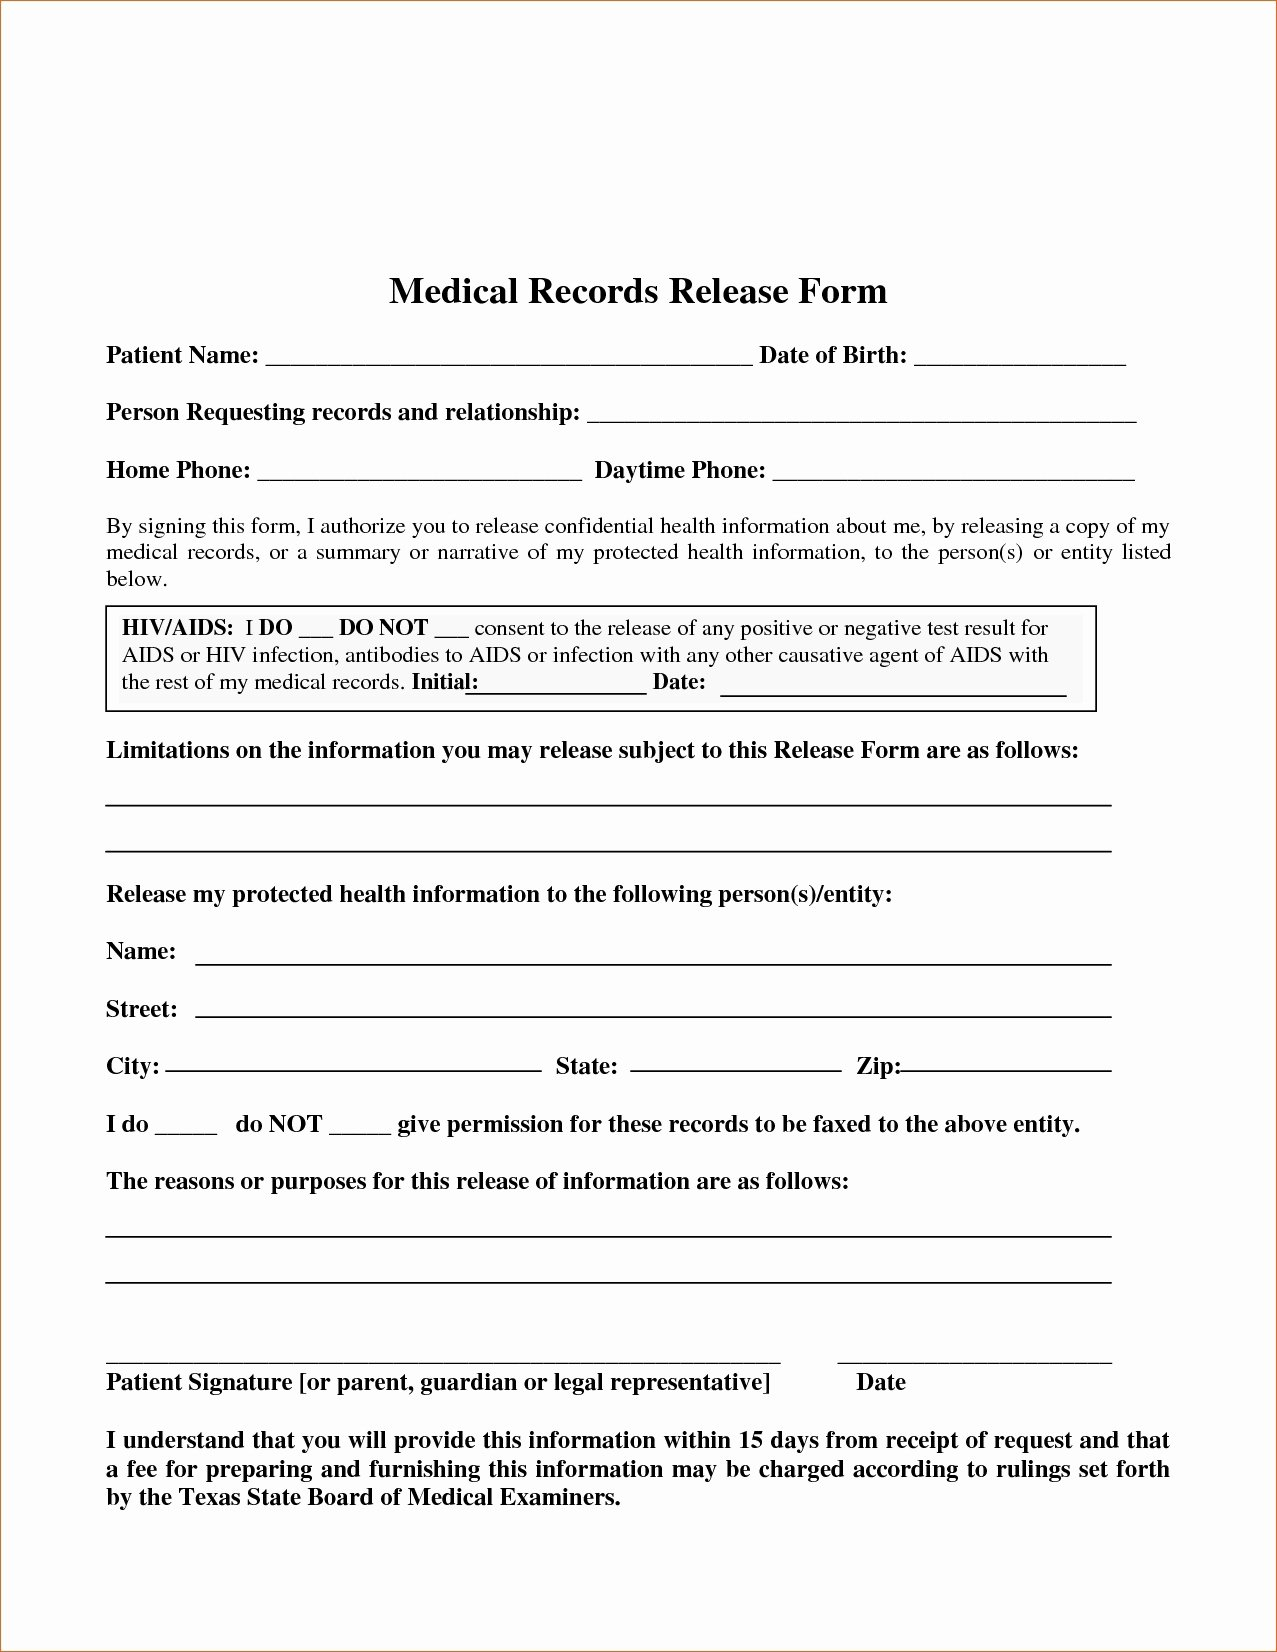 Medical Release form Template Awesome Medical Record Release form Template